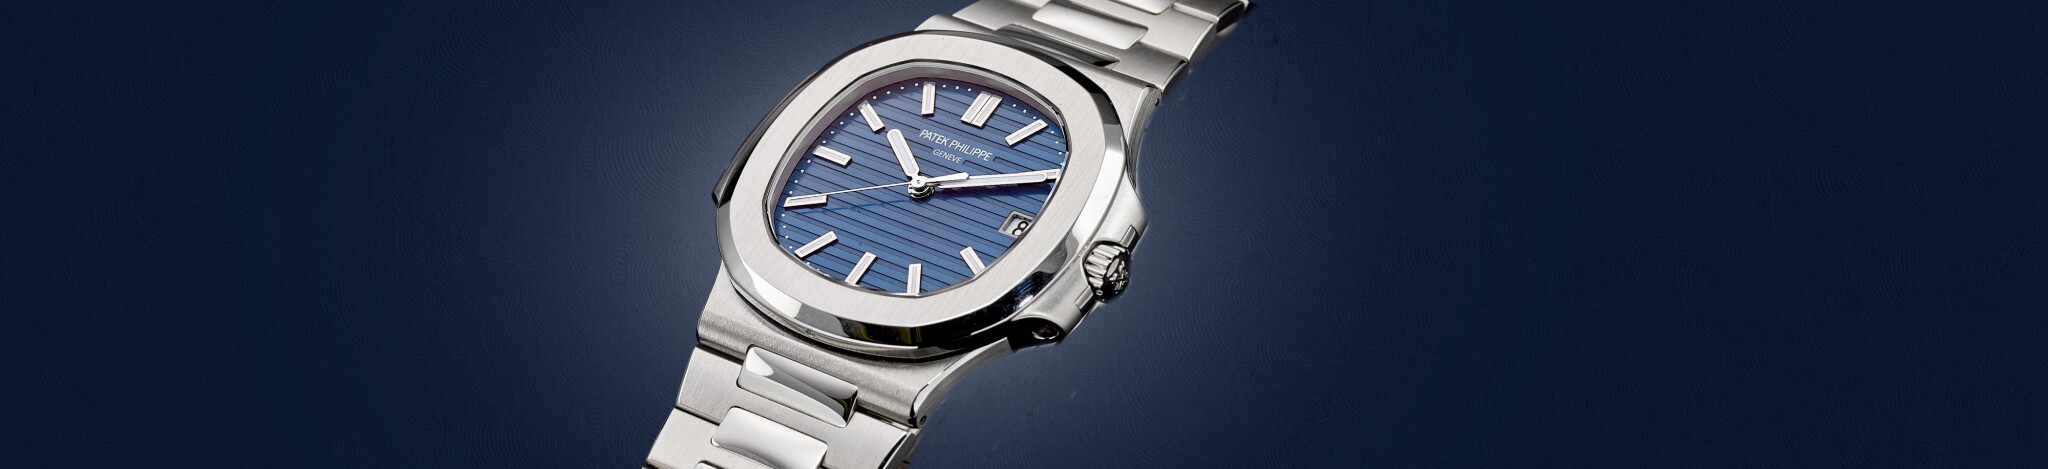 Watches Weekly | Patek Philippe